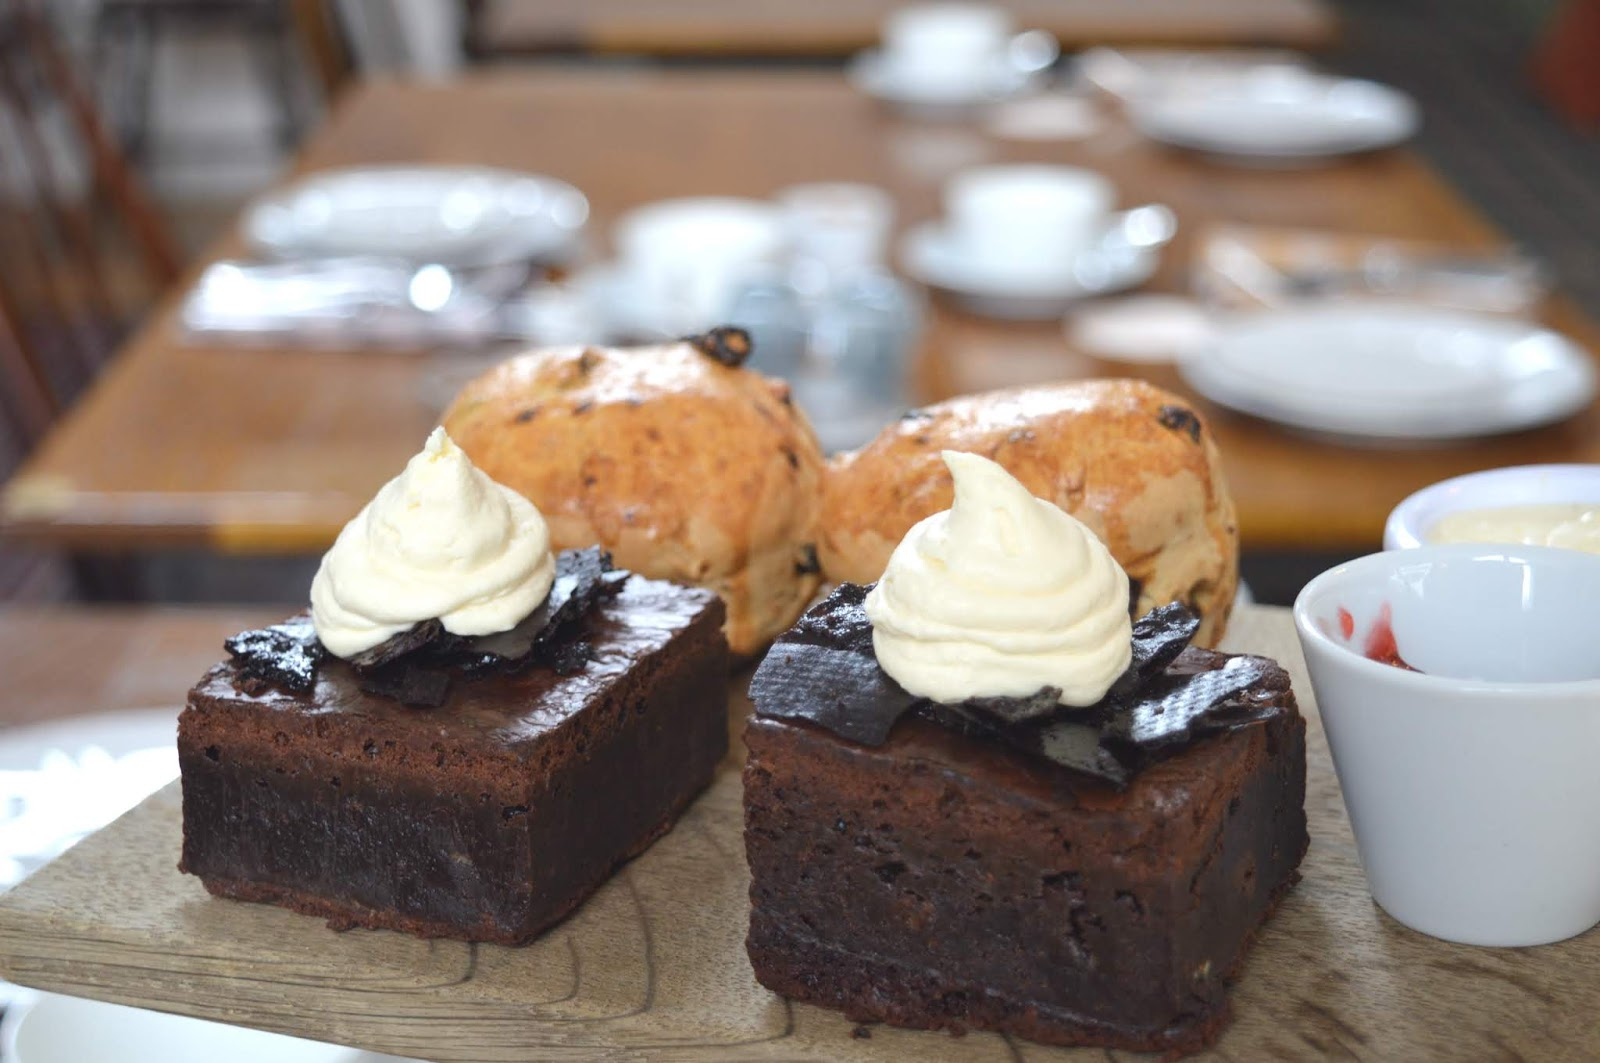 St Mary's Inn Northumberland - Rustic Afternoon Tea Brownies